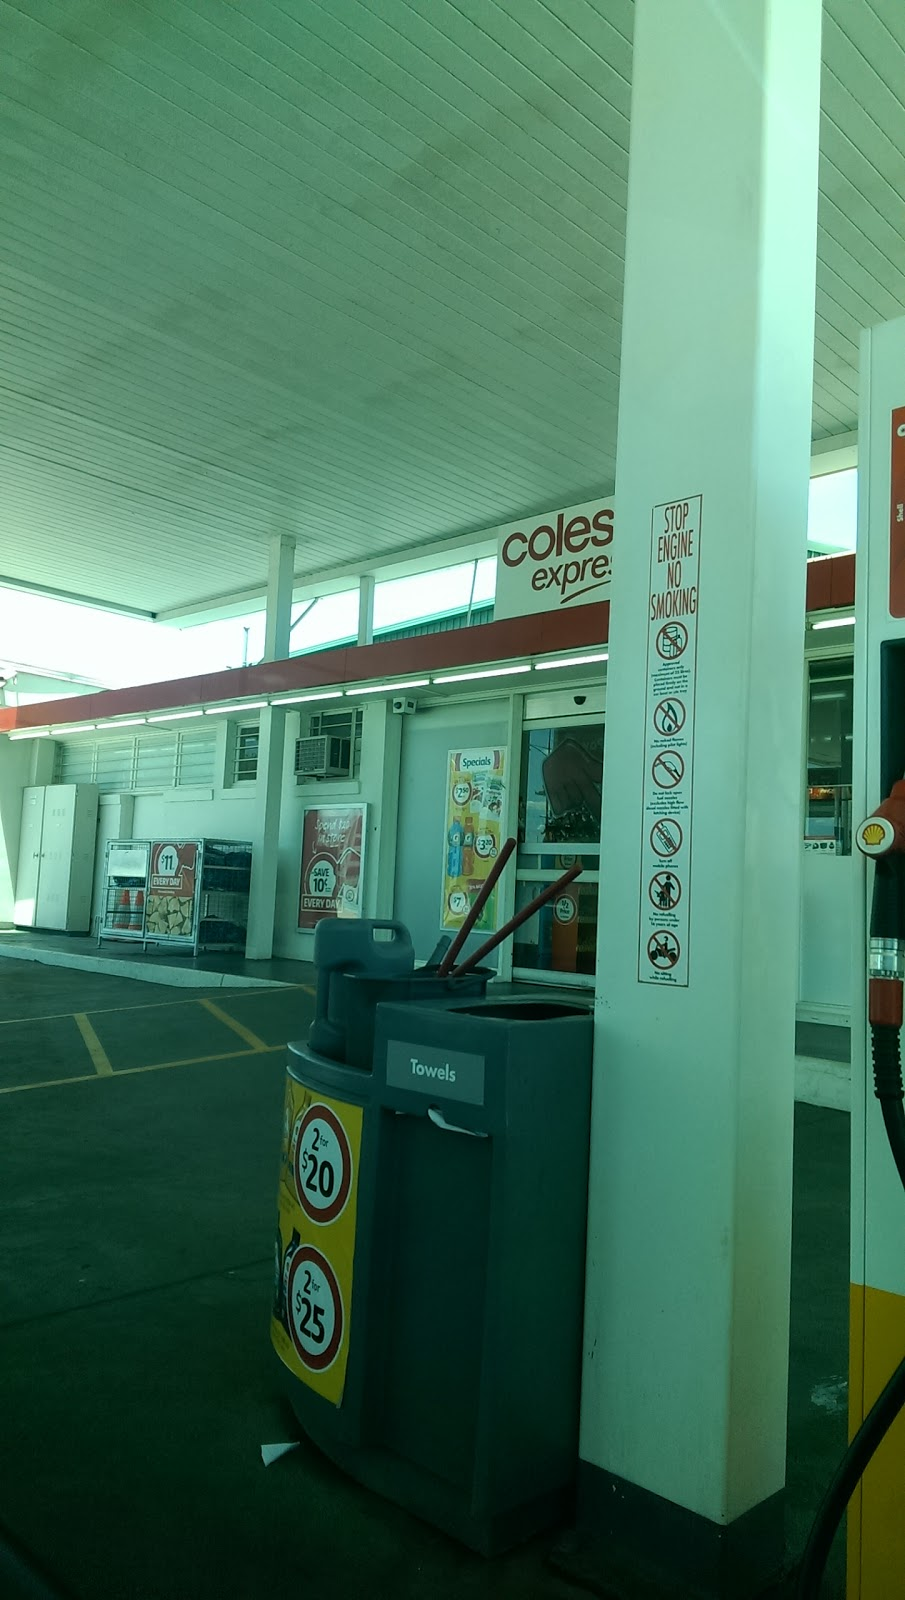 Coles Express | convenience store | 81-87 Elgin Blvd, Wodonga VIC 3690, Australia | 0260241444 OR +61 2 6024 1444